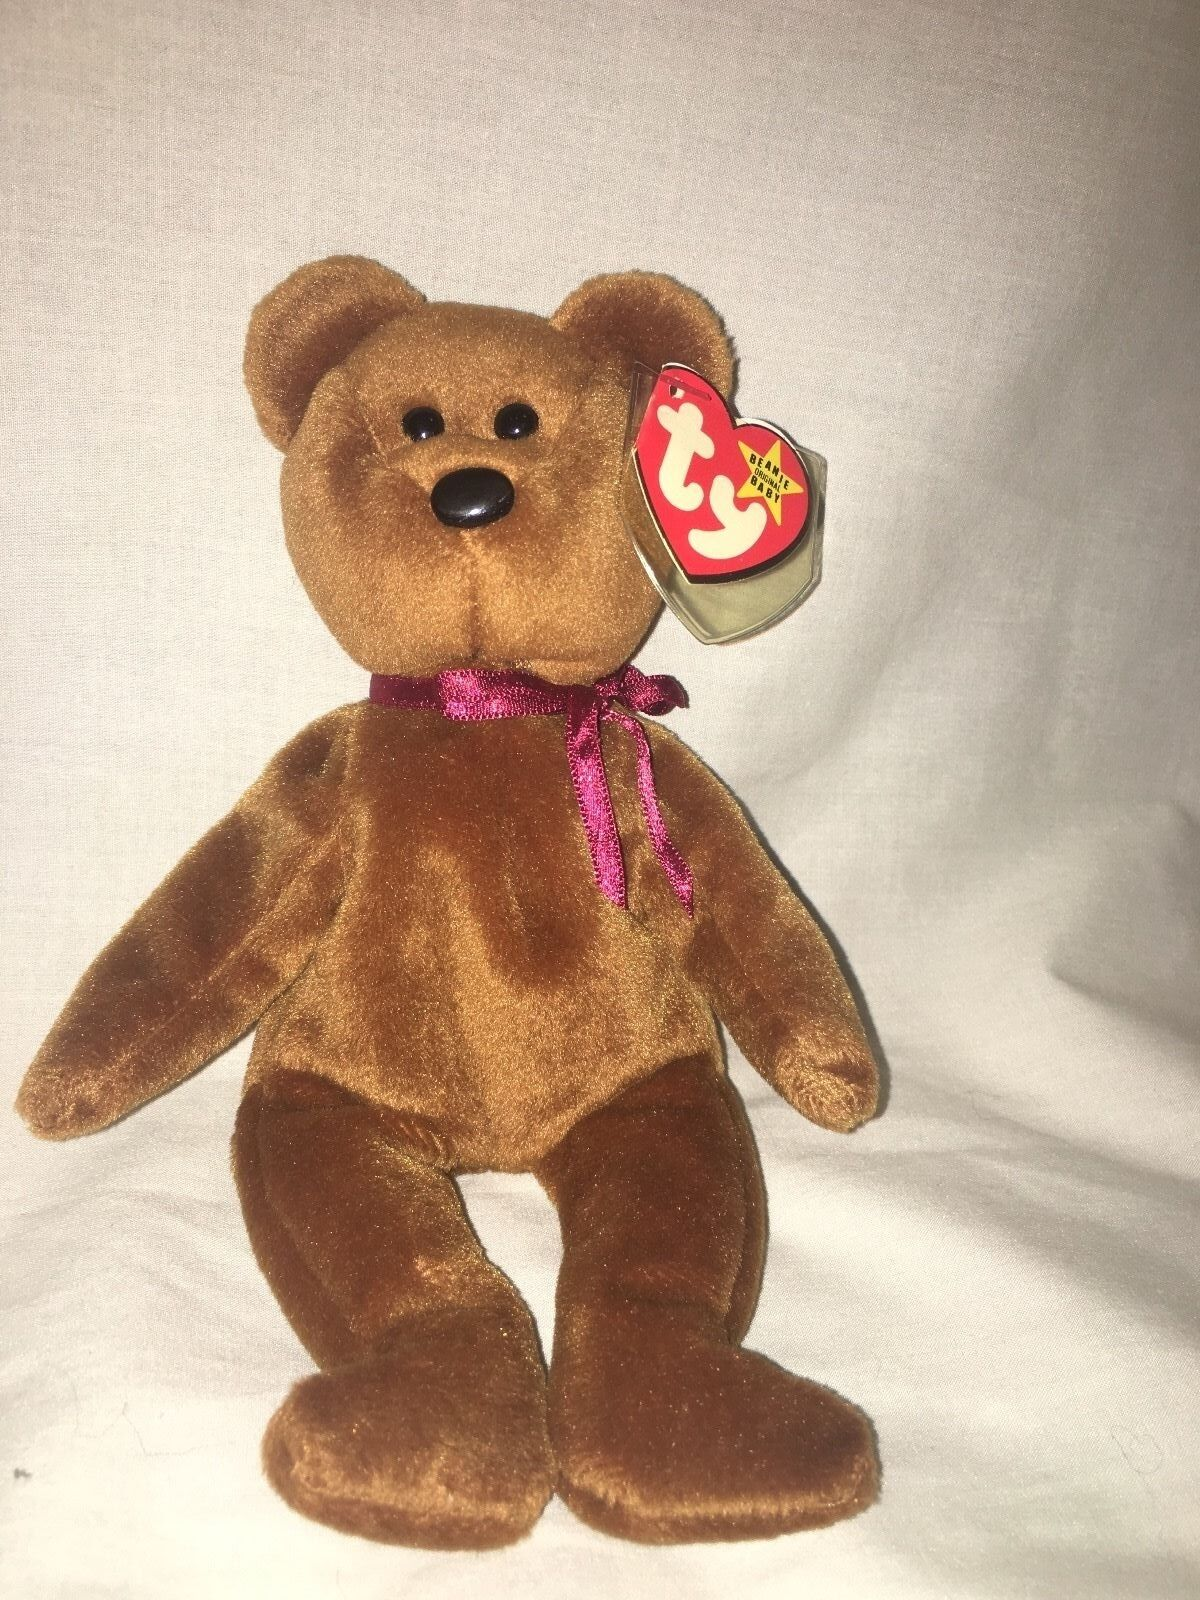 1995 Teddy Ty Beanie Baby in Mint Condition